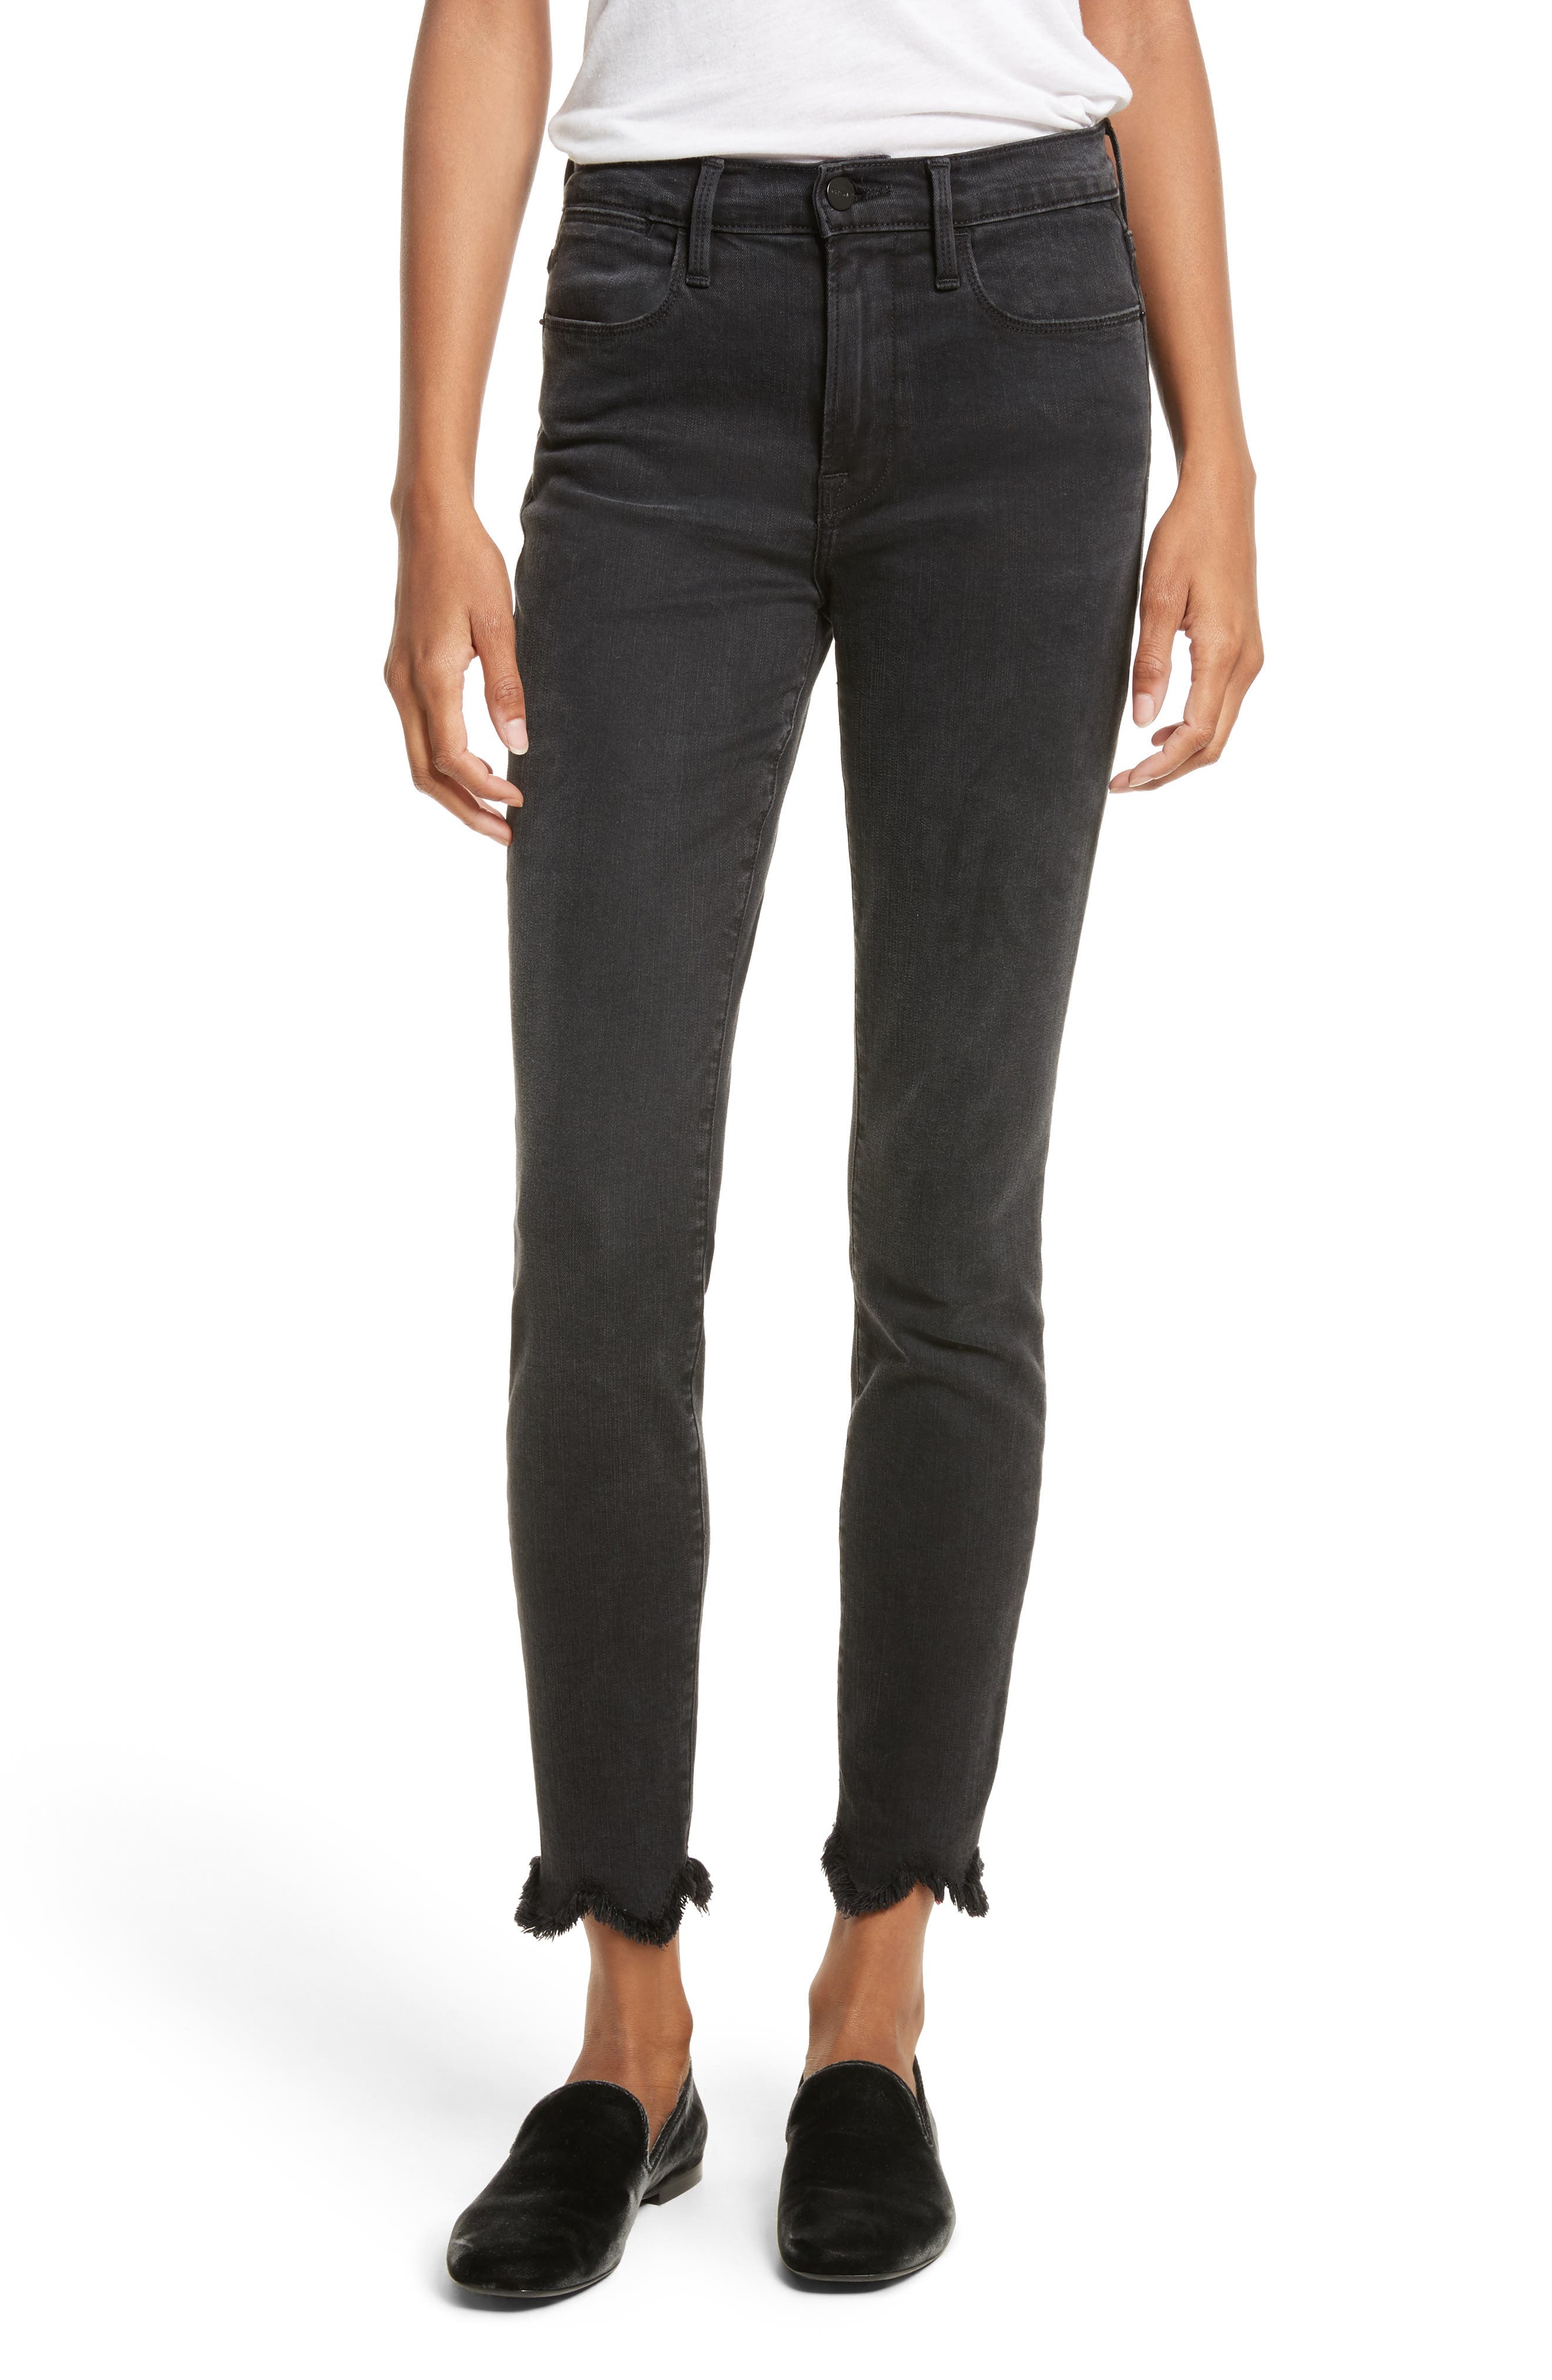 Alternate Image 1 Selected - FRAME Le High Frayed Ankle Skinny Jeans (Whittier)